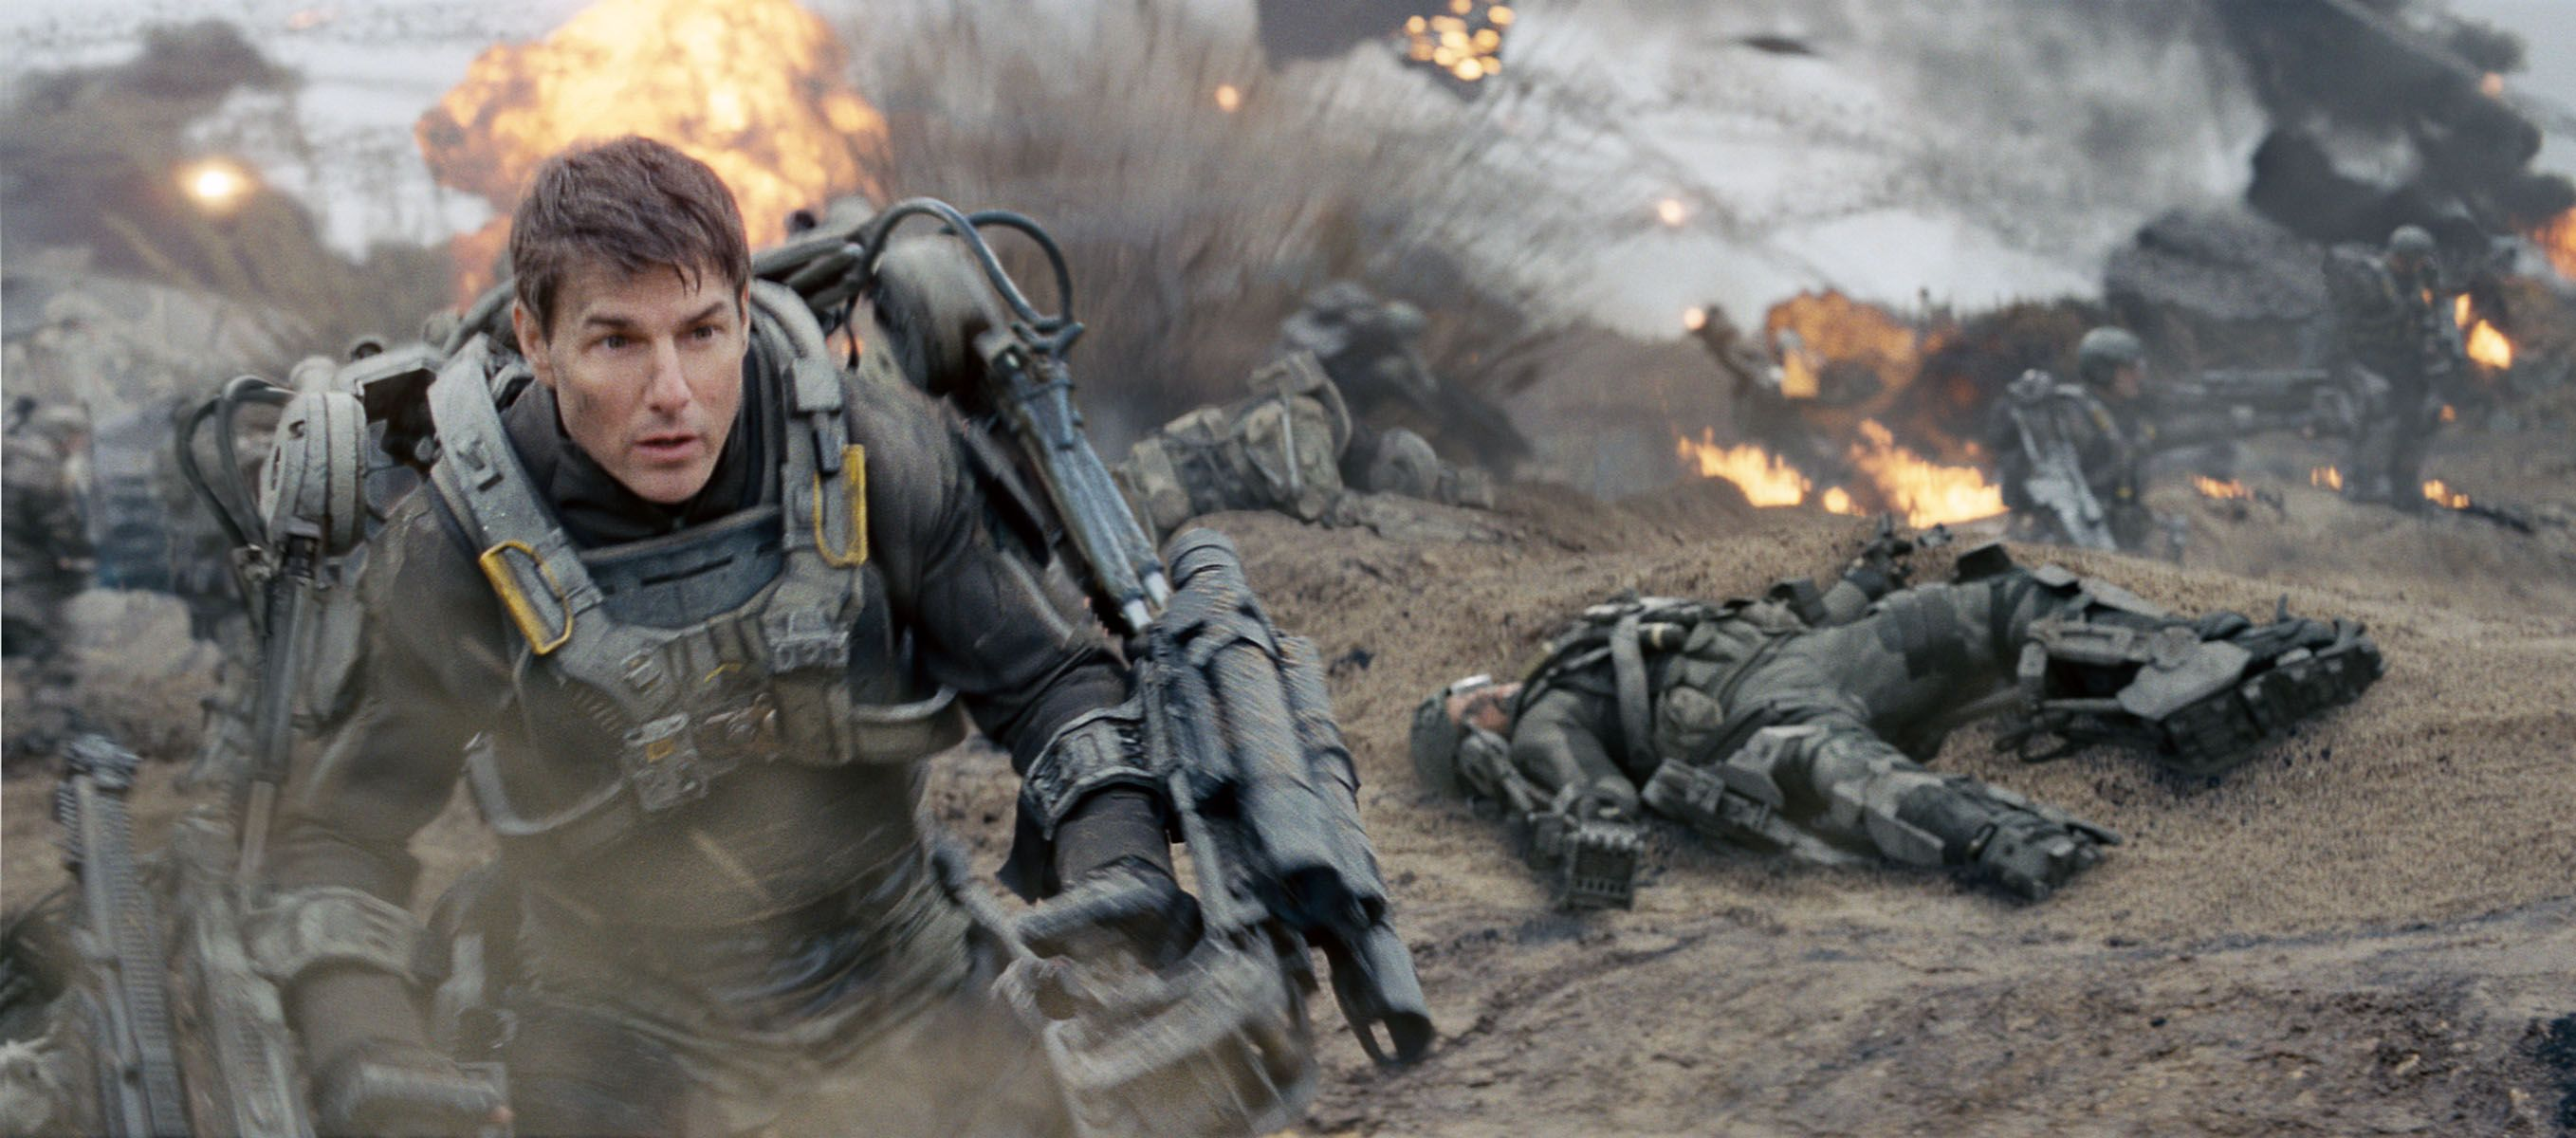 27 EDGE OF TOMORROW Images Featuring Tom Cruise and Emily ...